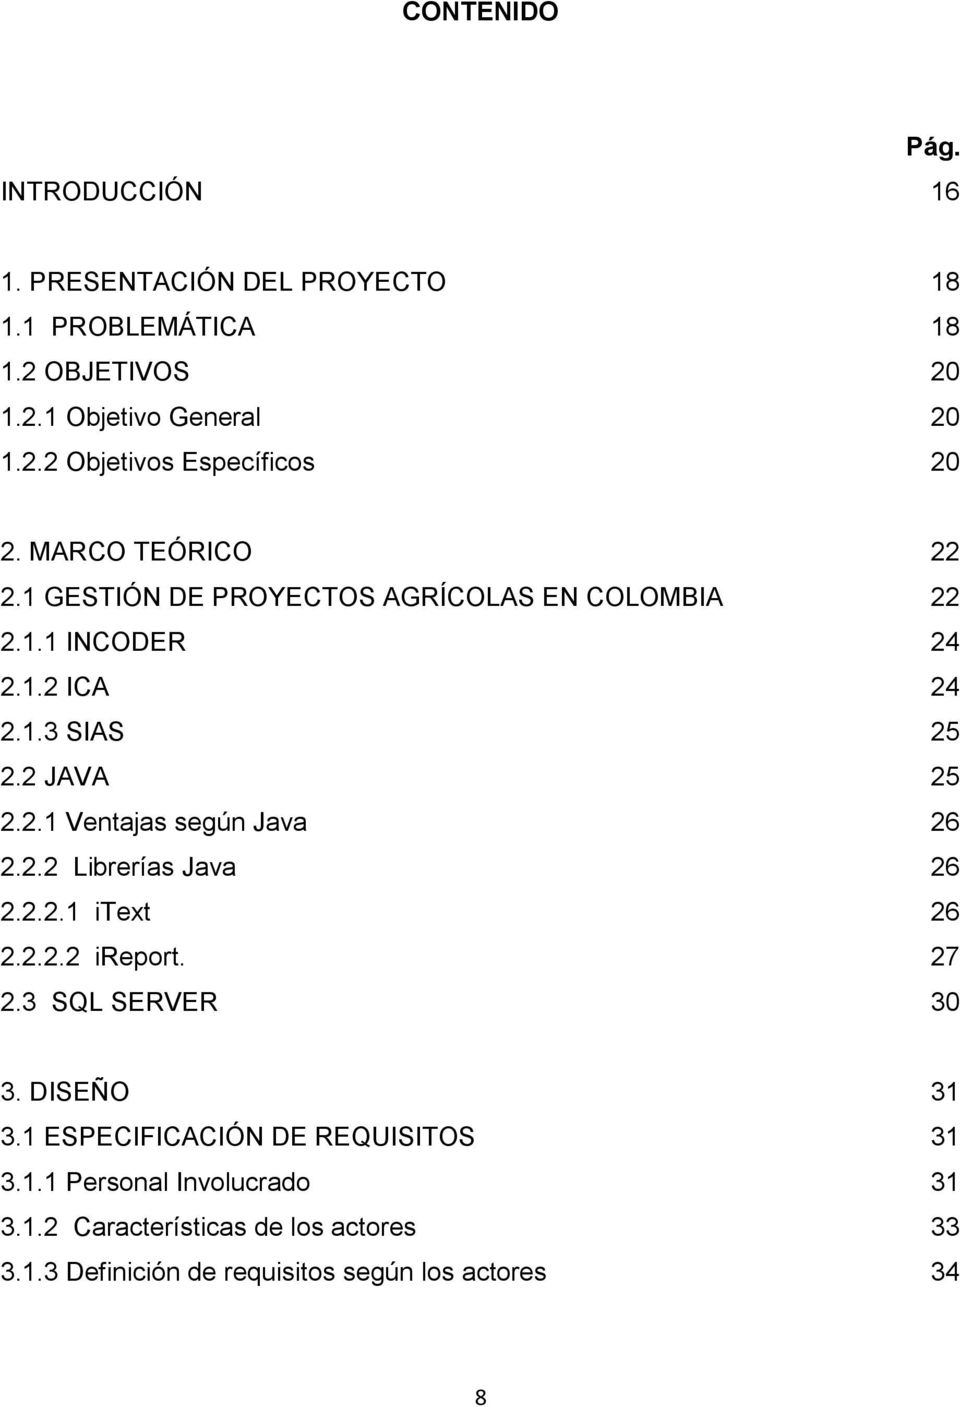 2.2 Librerías Java 26 2.2.2.1 itext 26 2.2.2.2 ireport. 27 2.3 SQL SERVER 30 3. DISEÑO 31 3.1 ESPECIFICACIÓN DE REQUISITOS 31 3.1.1 Personal Involucrado 31 3.